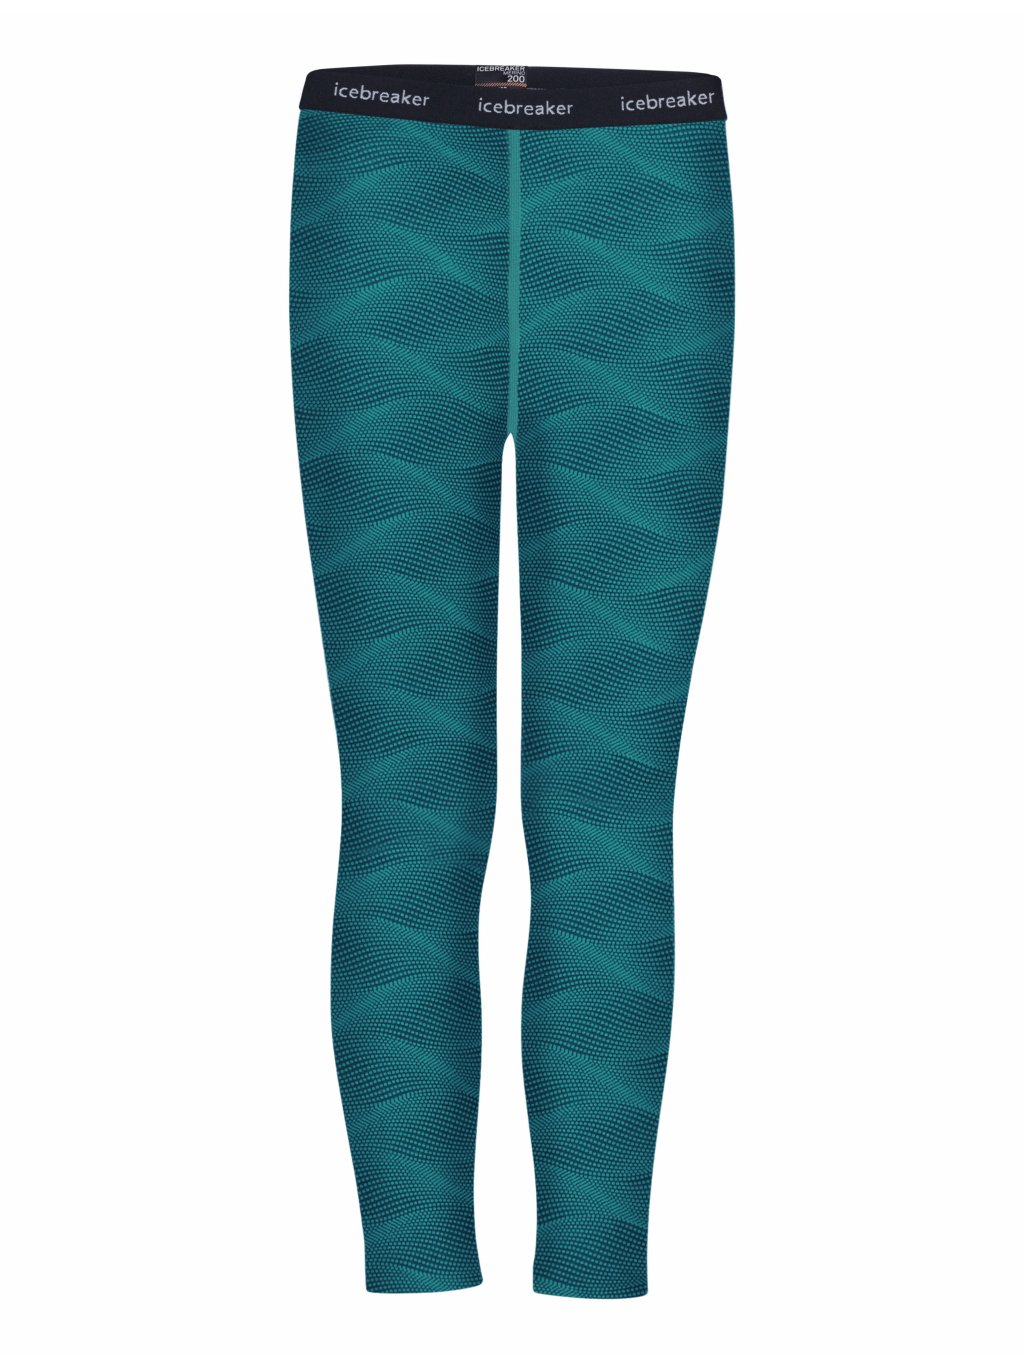 FW18 KIDS 200 OASIS LEGGINGS CURVE 104504402 1